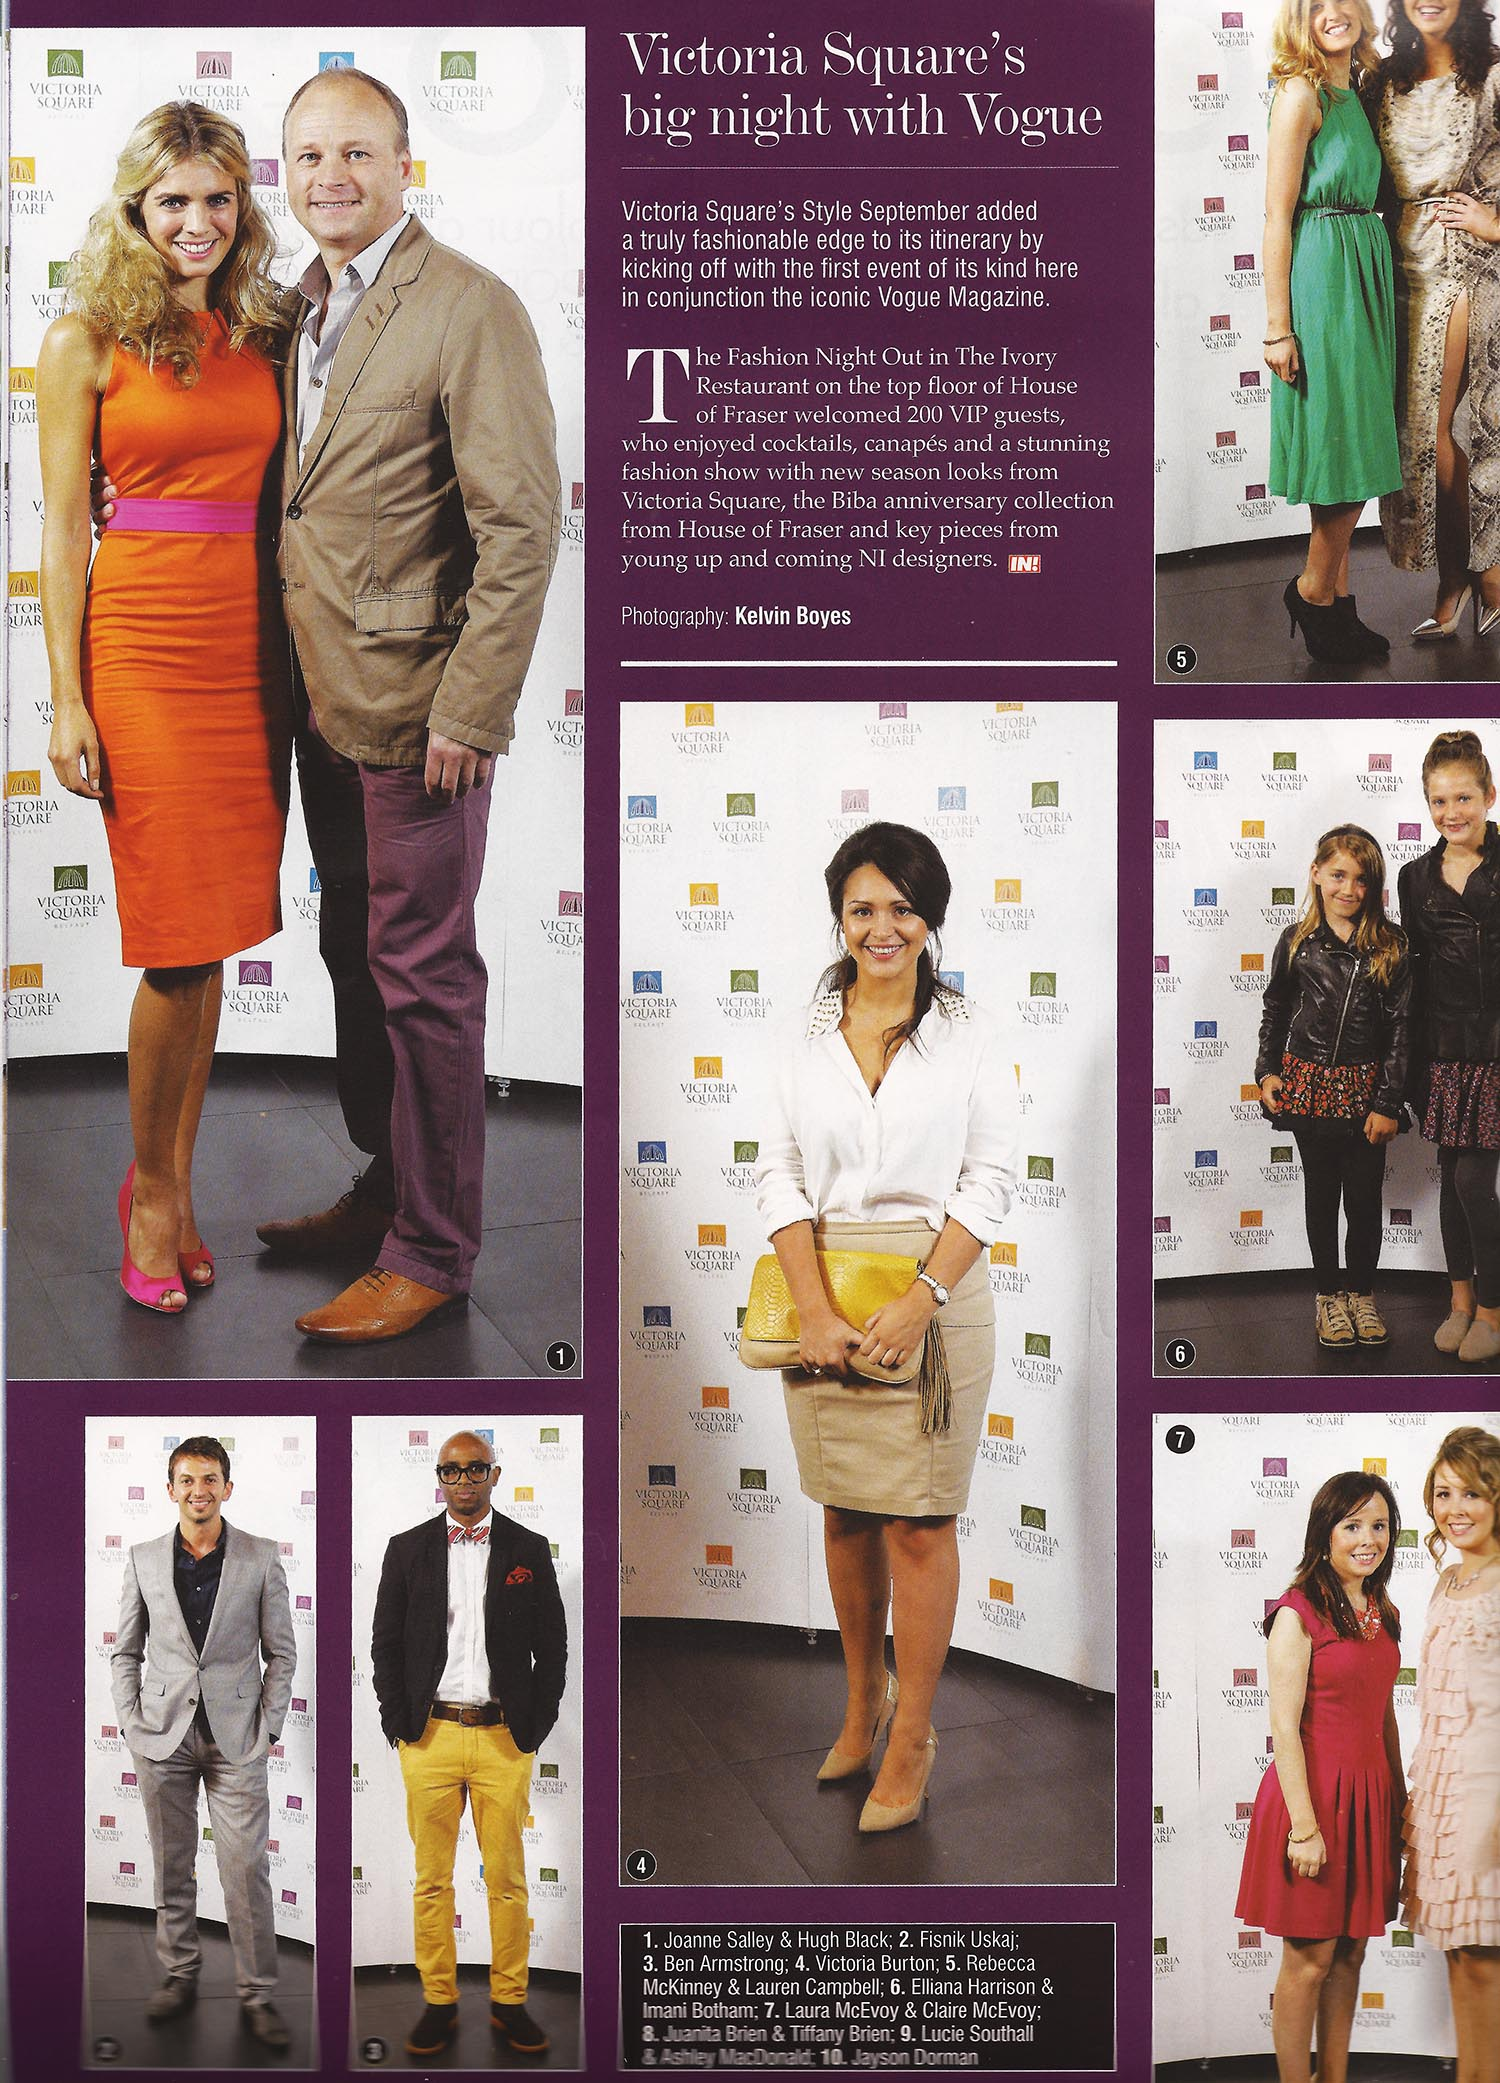 Joanne Salley Top Right wearing RUEDI - IN! Magazine, Vogue's fashion night out Oct 2012